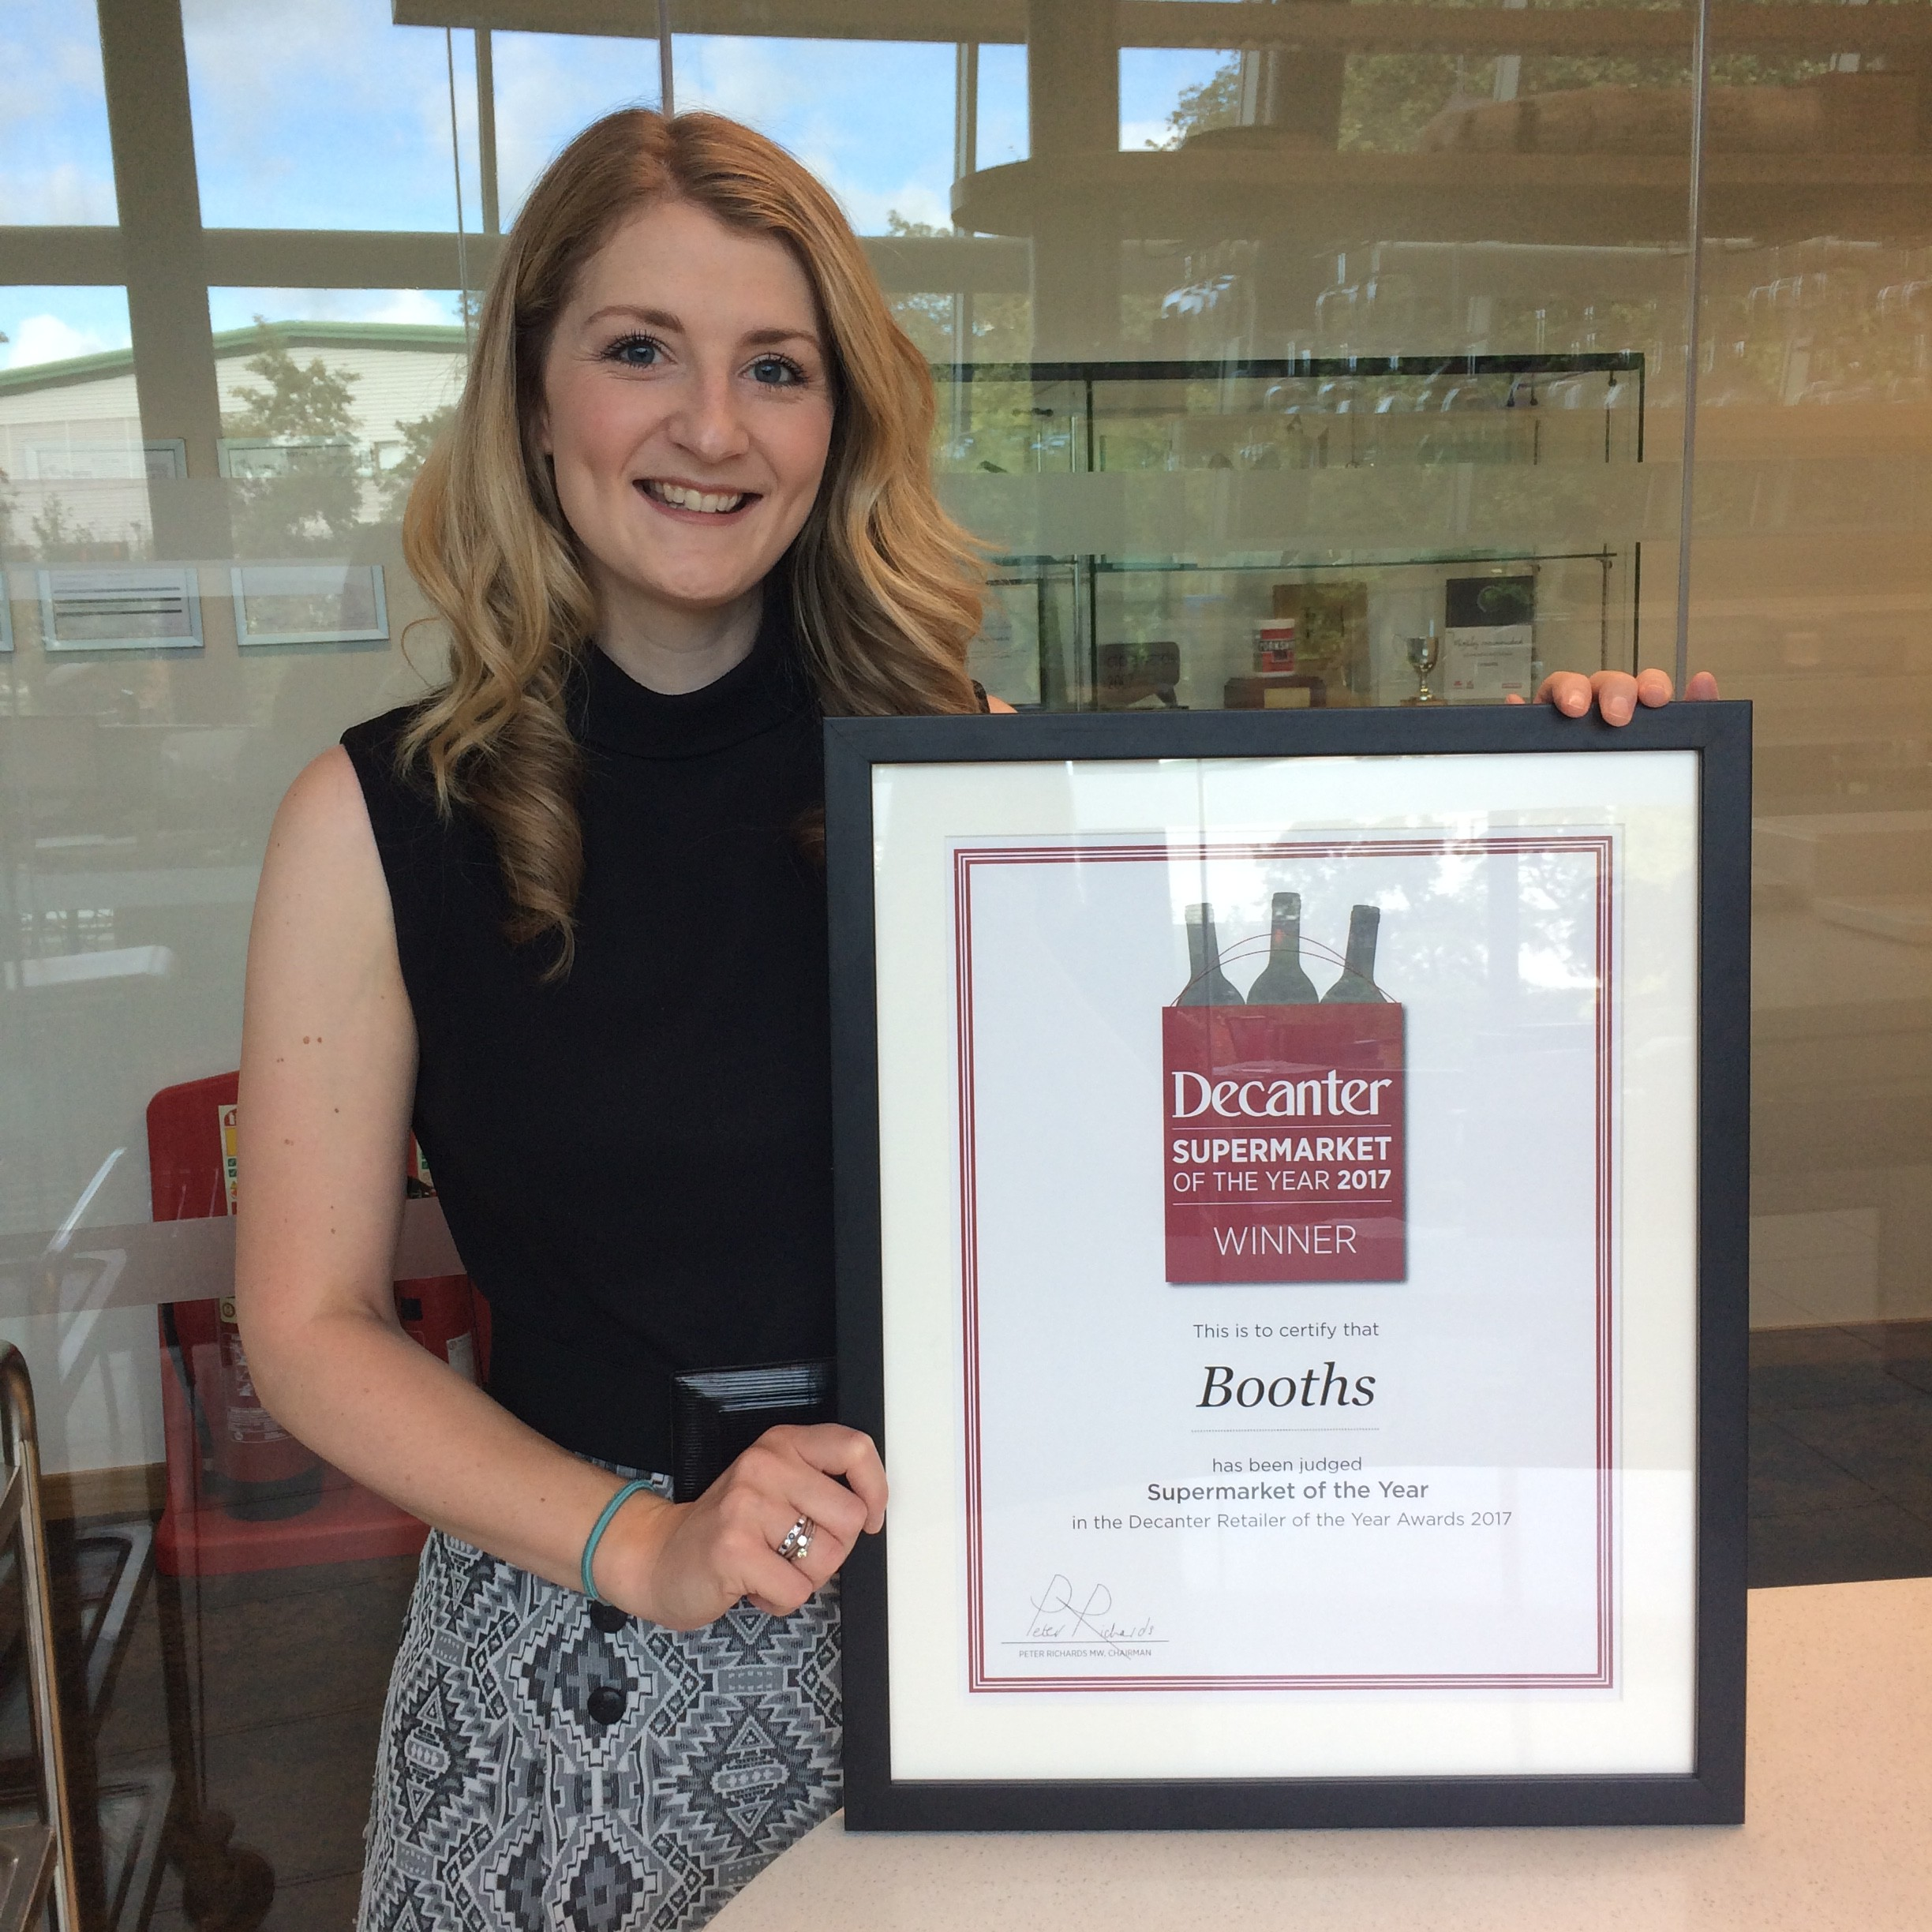 Our Wine Buyer Victoria with Our Decanter 2017 Award